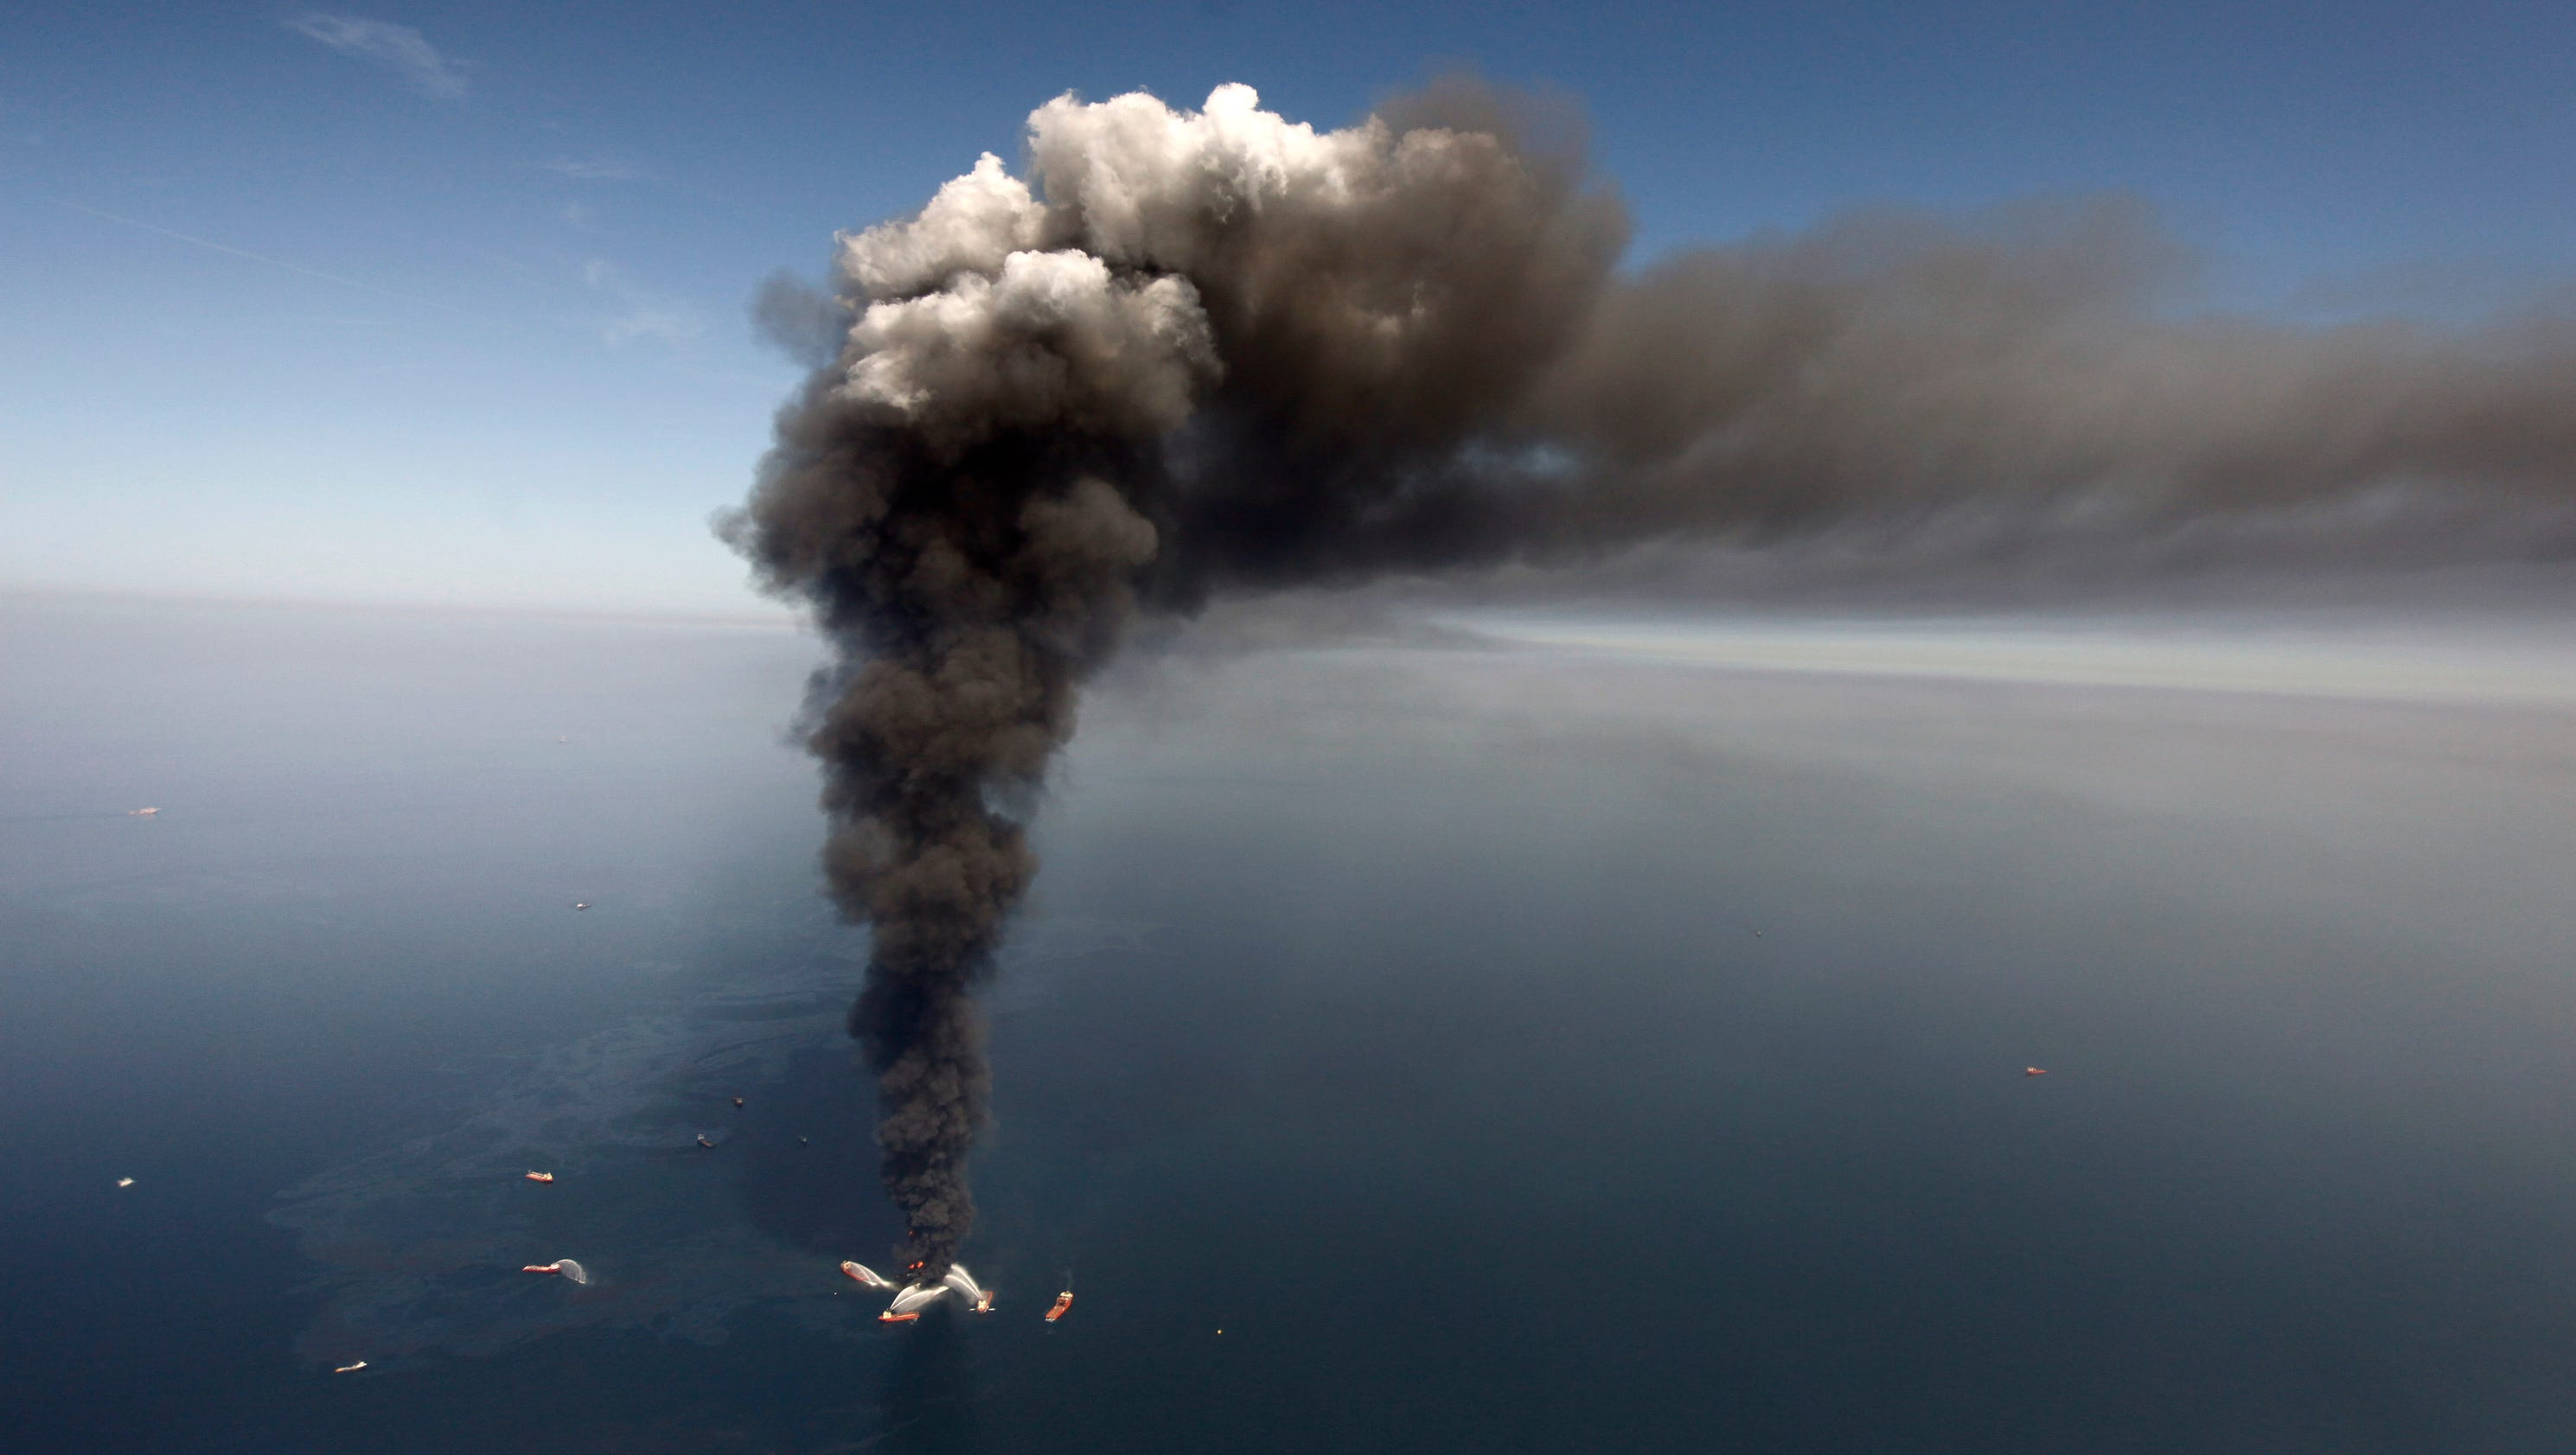 pestle petroleum and gulf oil spill Deepwater horizon oil spill is also known as the bp oil spill or gulf of mexico oil spill happens to be the largest marine oil spill in the history of the united states bp company happened to be the initiators of a project known as macondo prospect oil field, where an oil spill occurred accidentally.